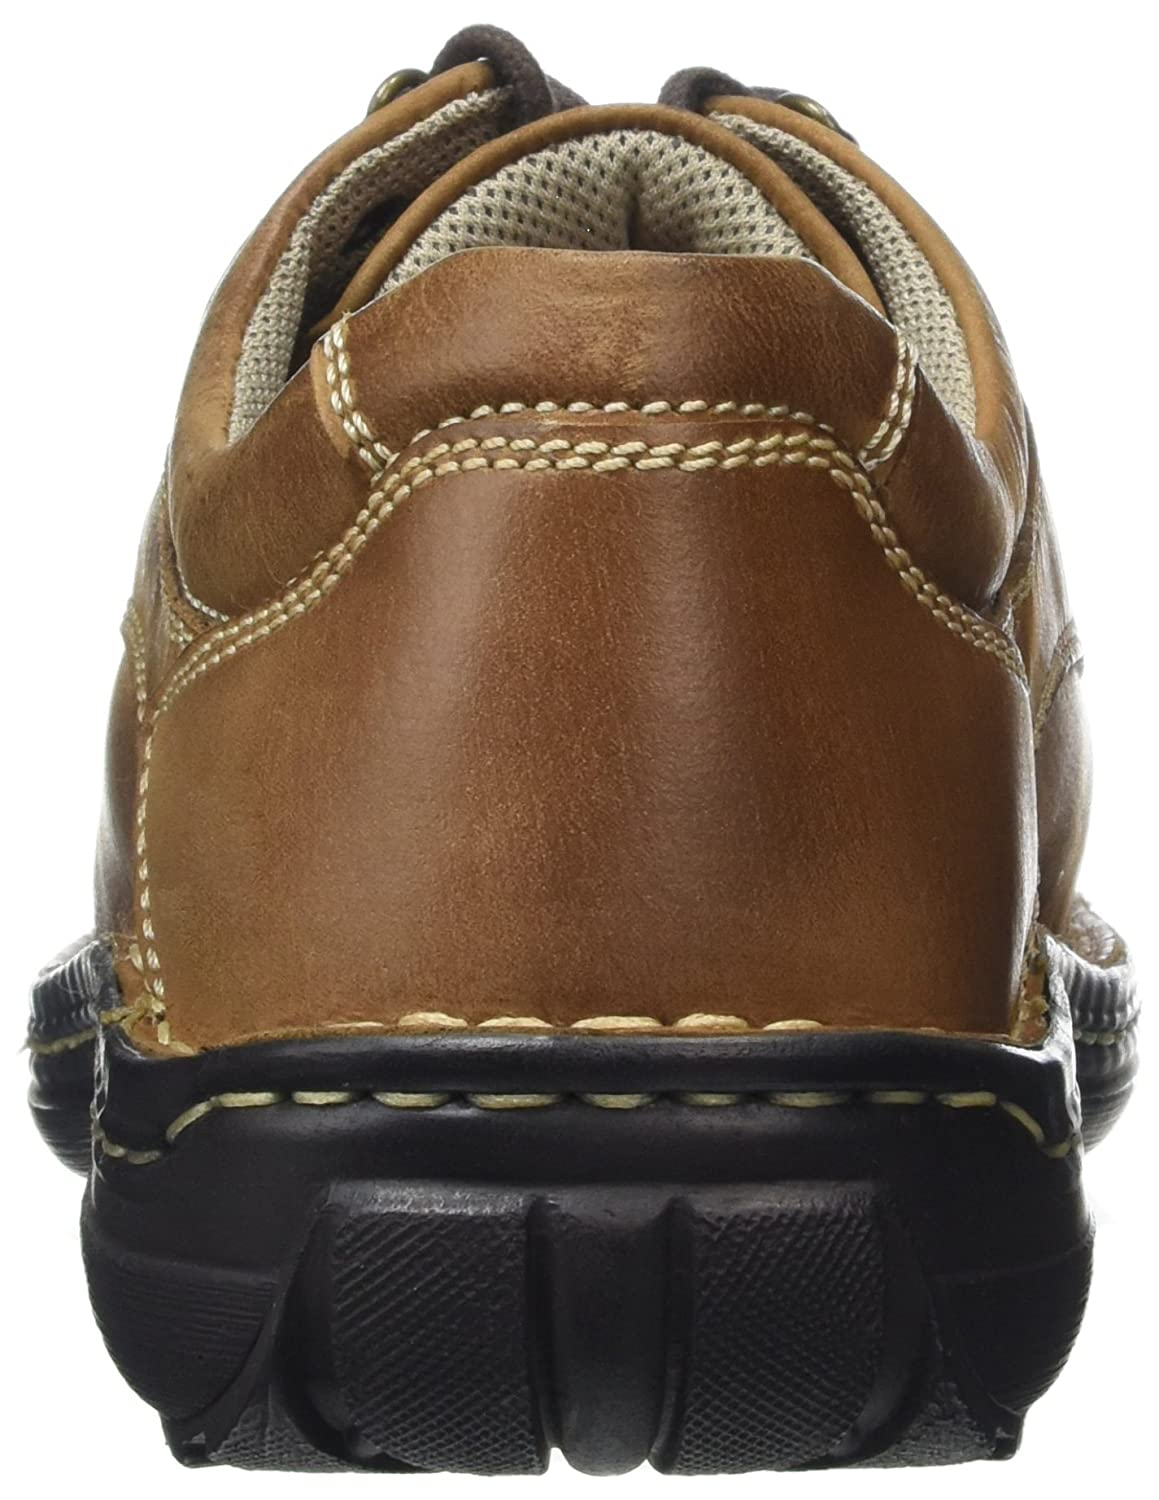 Hush Geography Puppies Herren Geography Hush Lace Derbys Braun (Tan) c2d3de